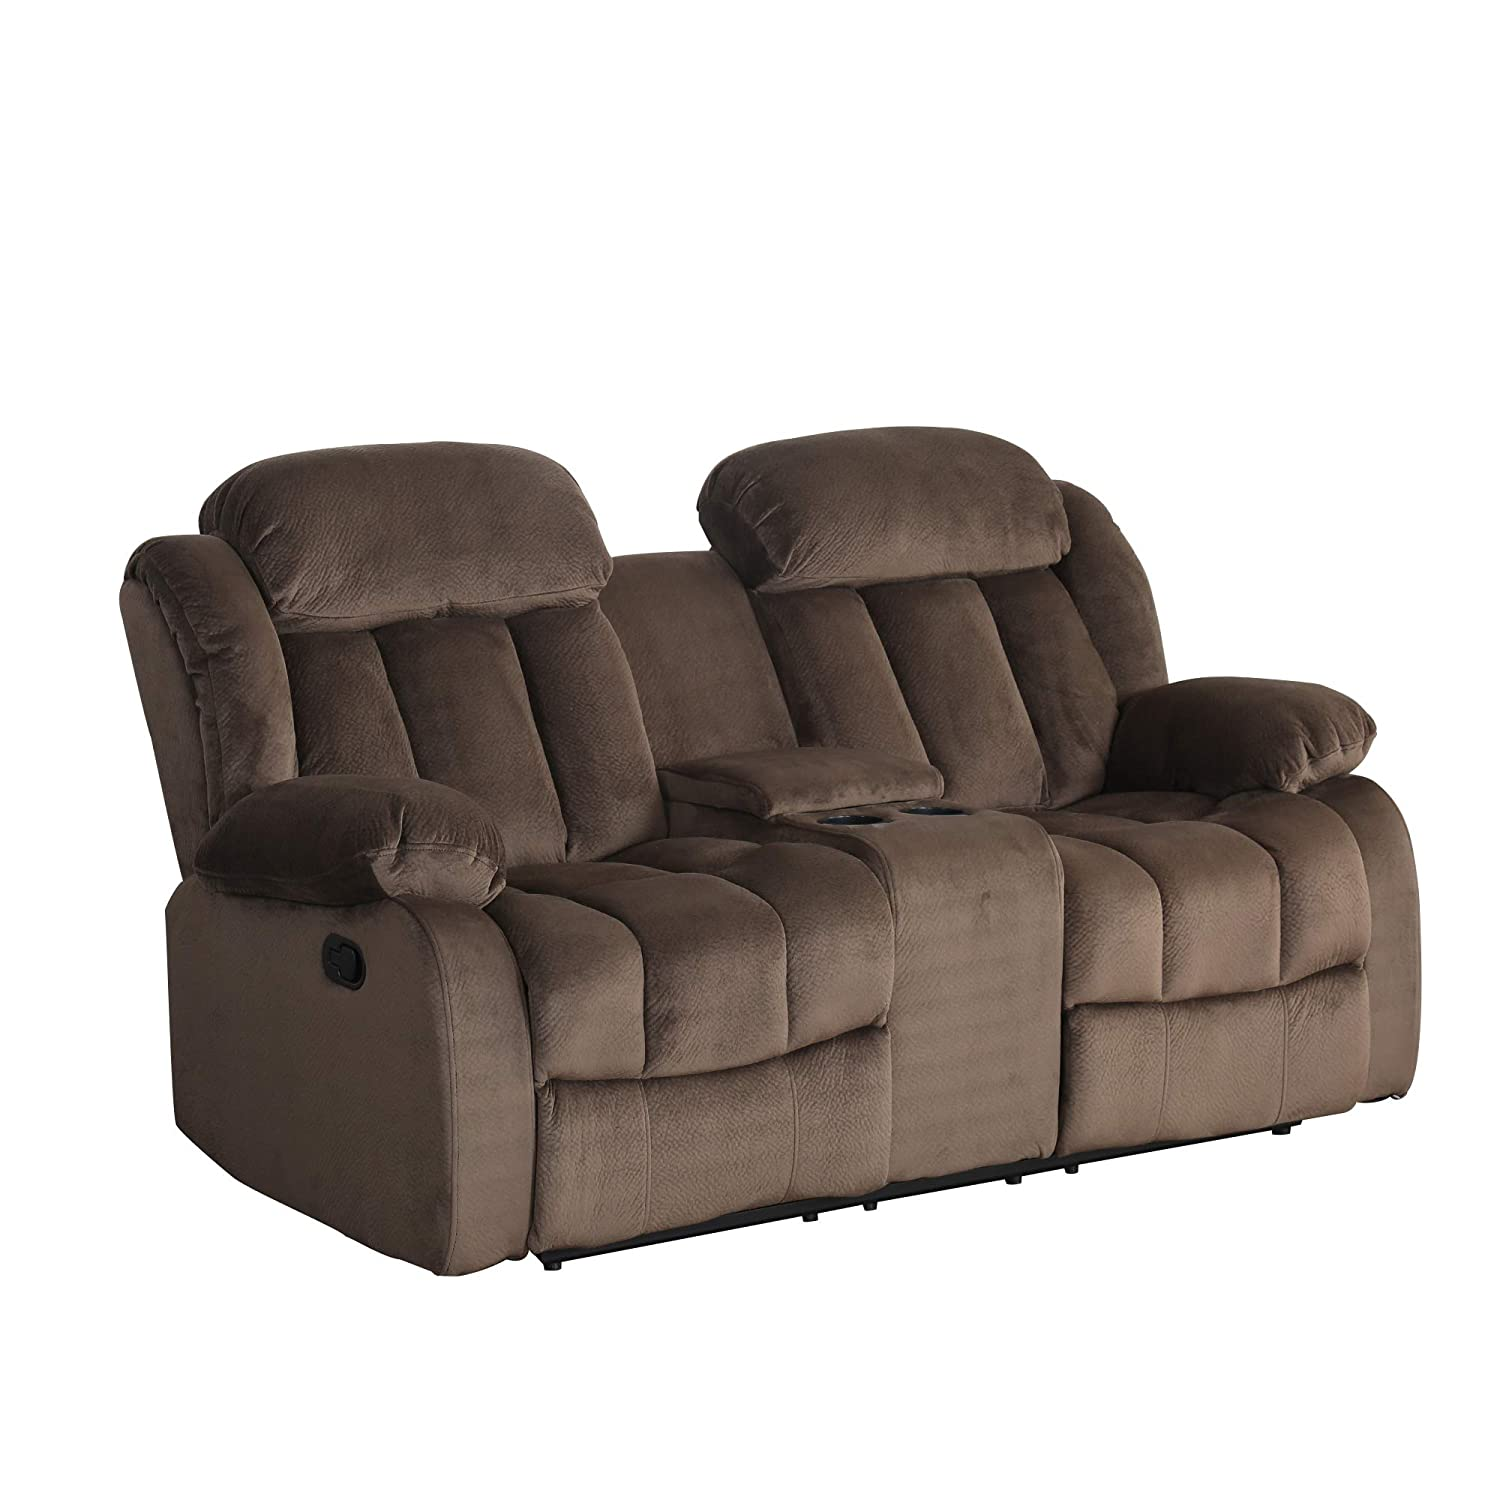 Sunset Trading Gully Recliner   Item# 11206